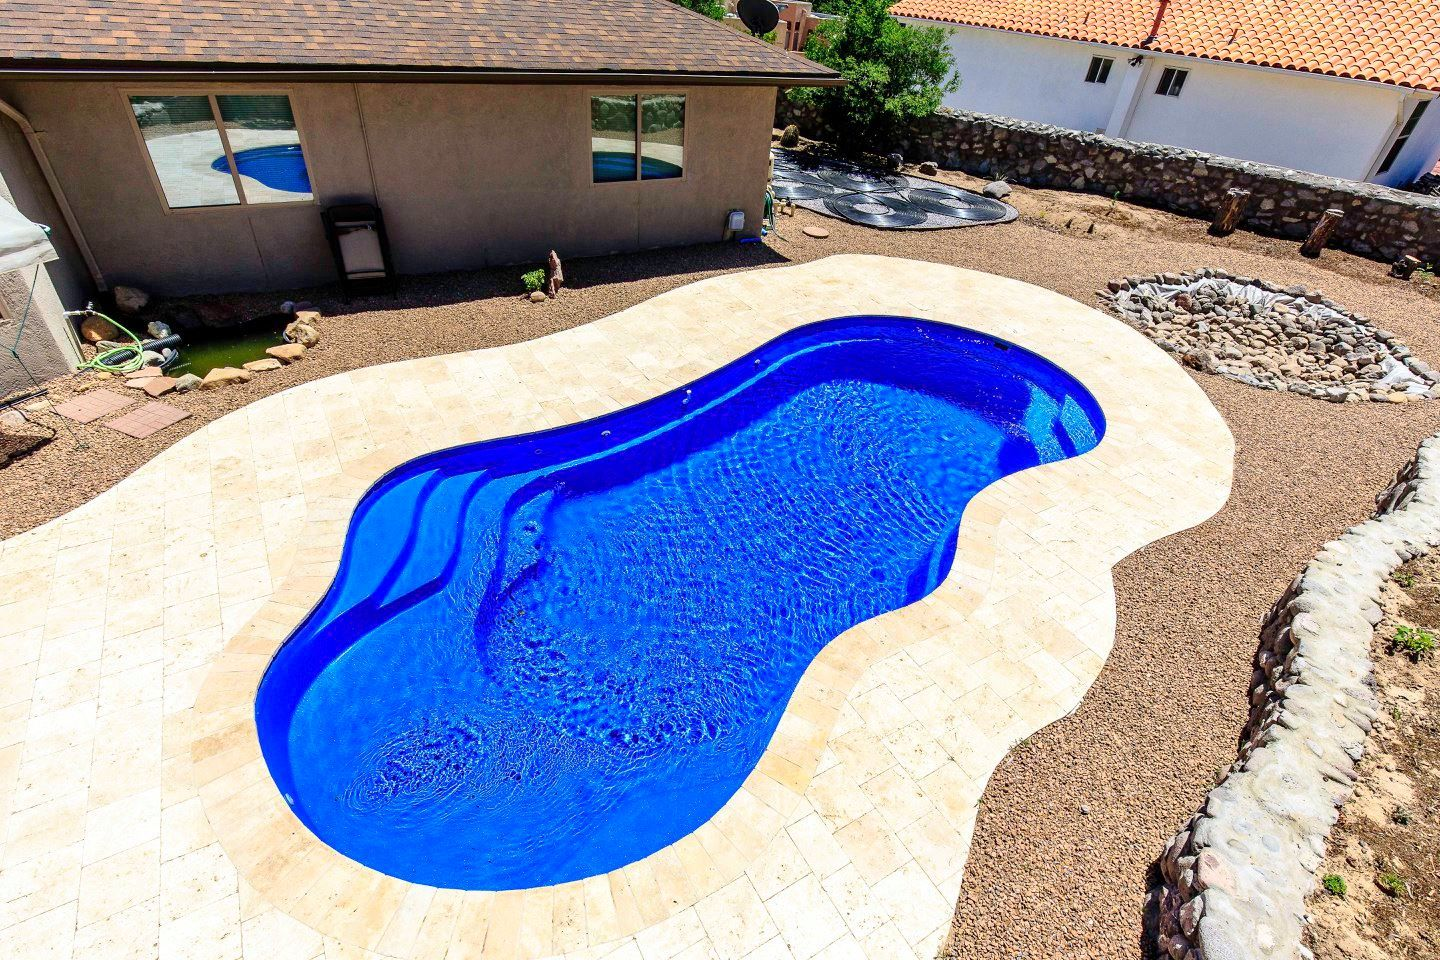 The Imagine Pools Fantasy Composite Swimming Pool Has An Inviting